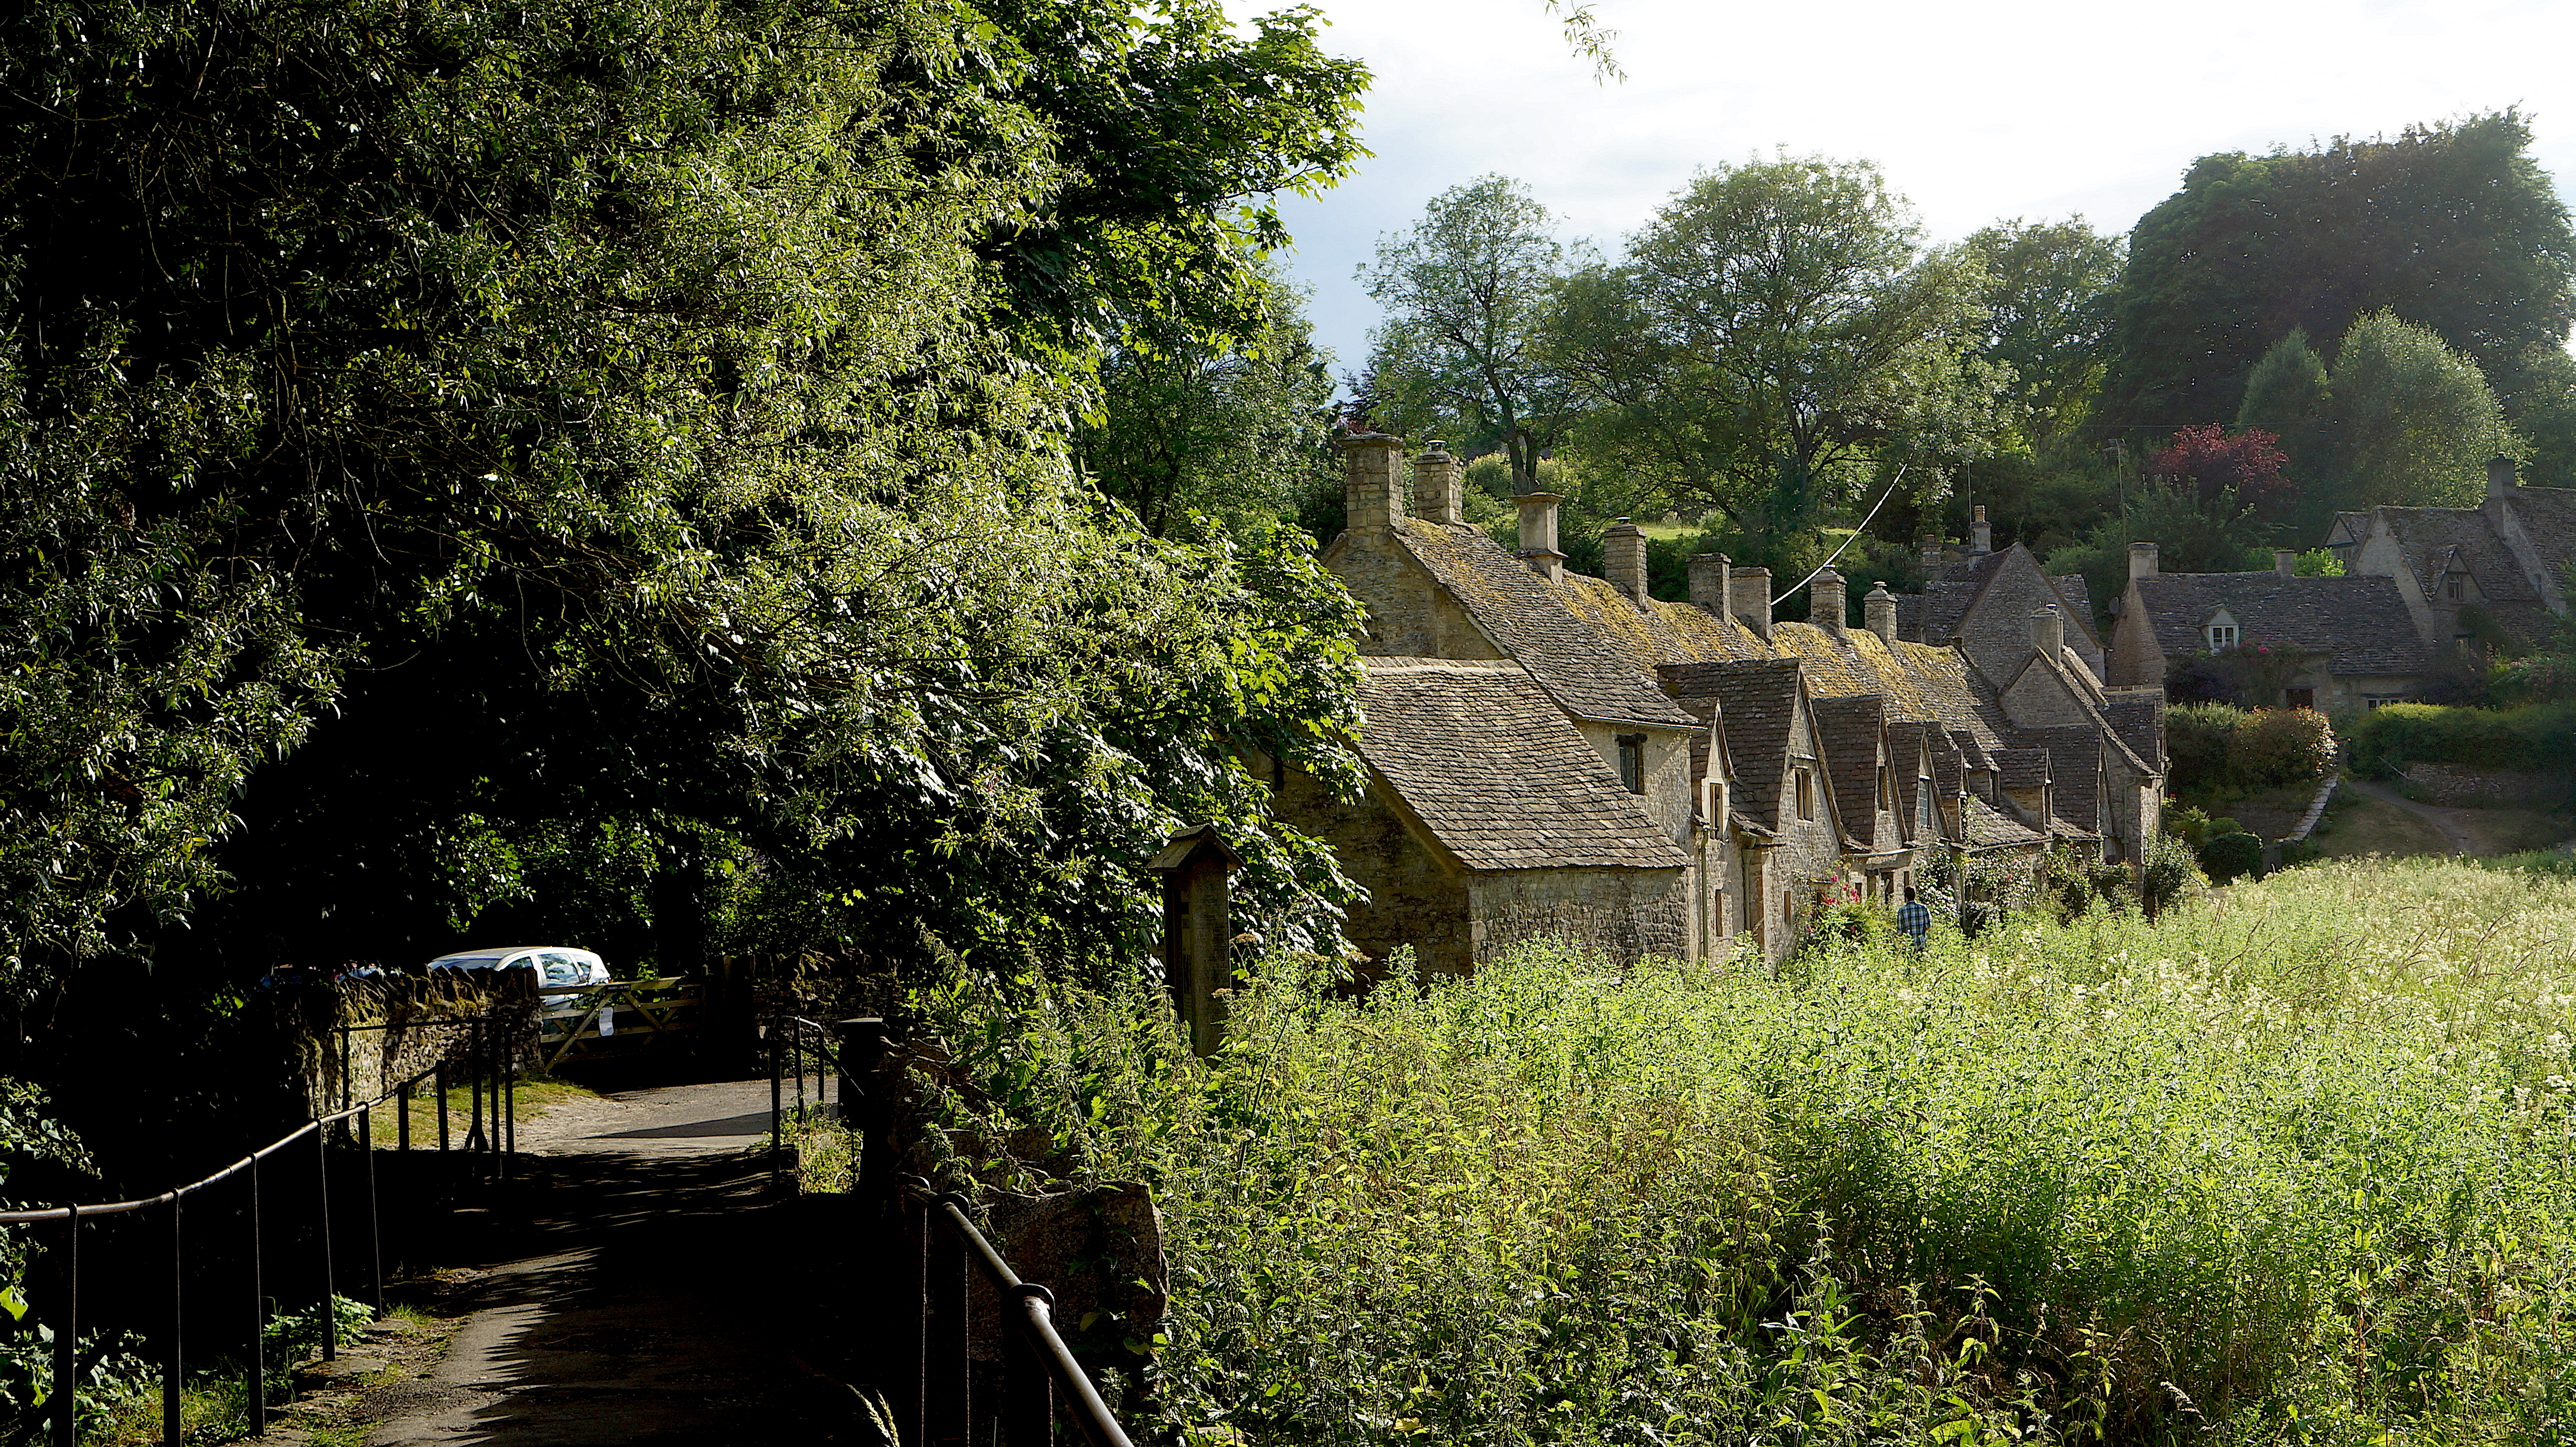 Bibury Day Trip | Day trip from London | England | English Countryside | Cotswold | www.ayewanderful.com